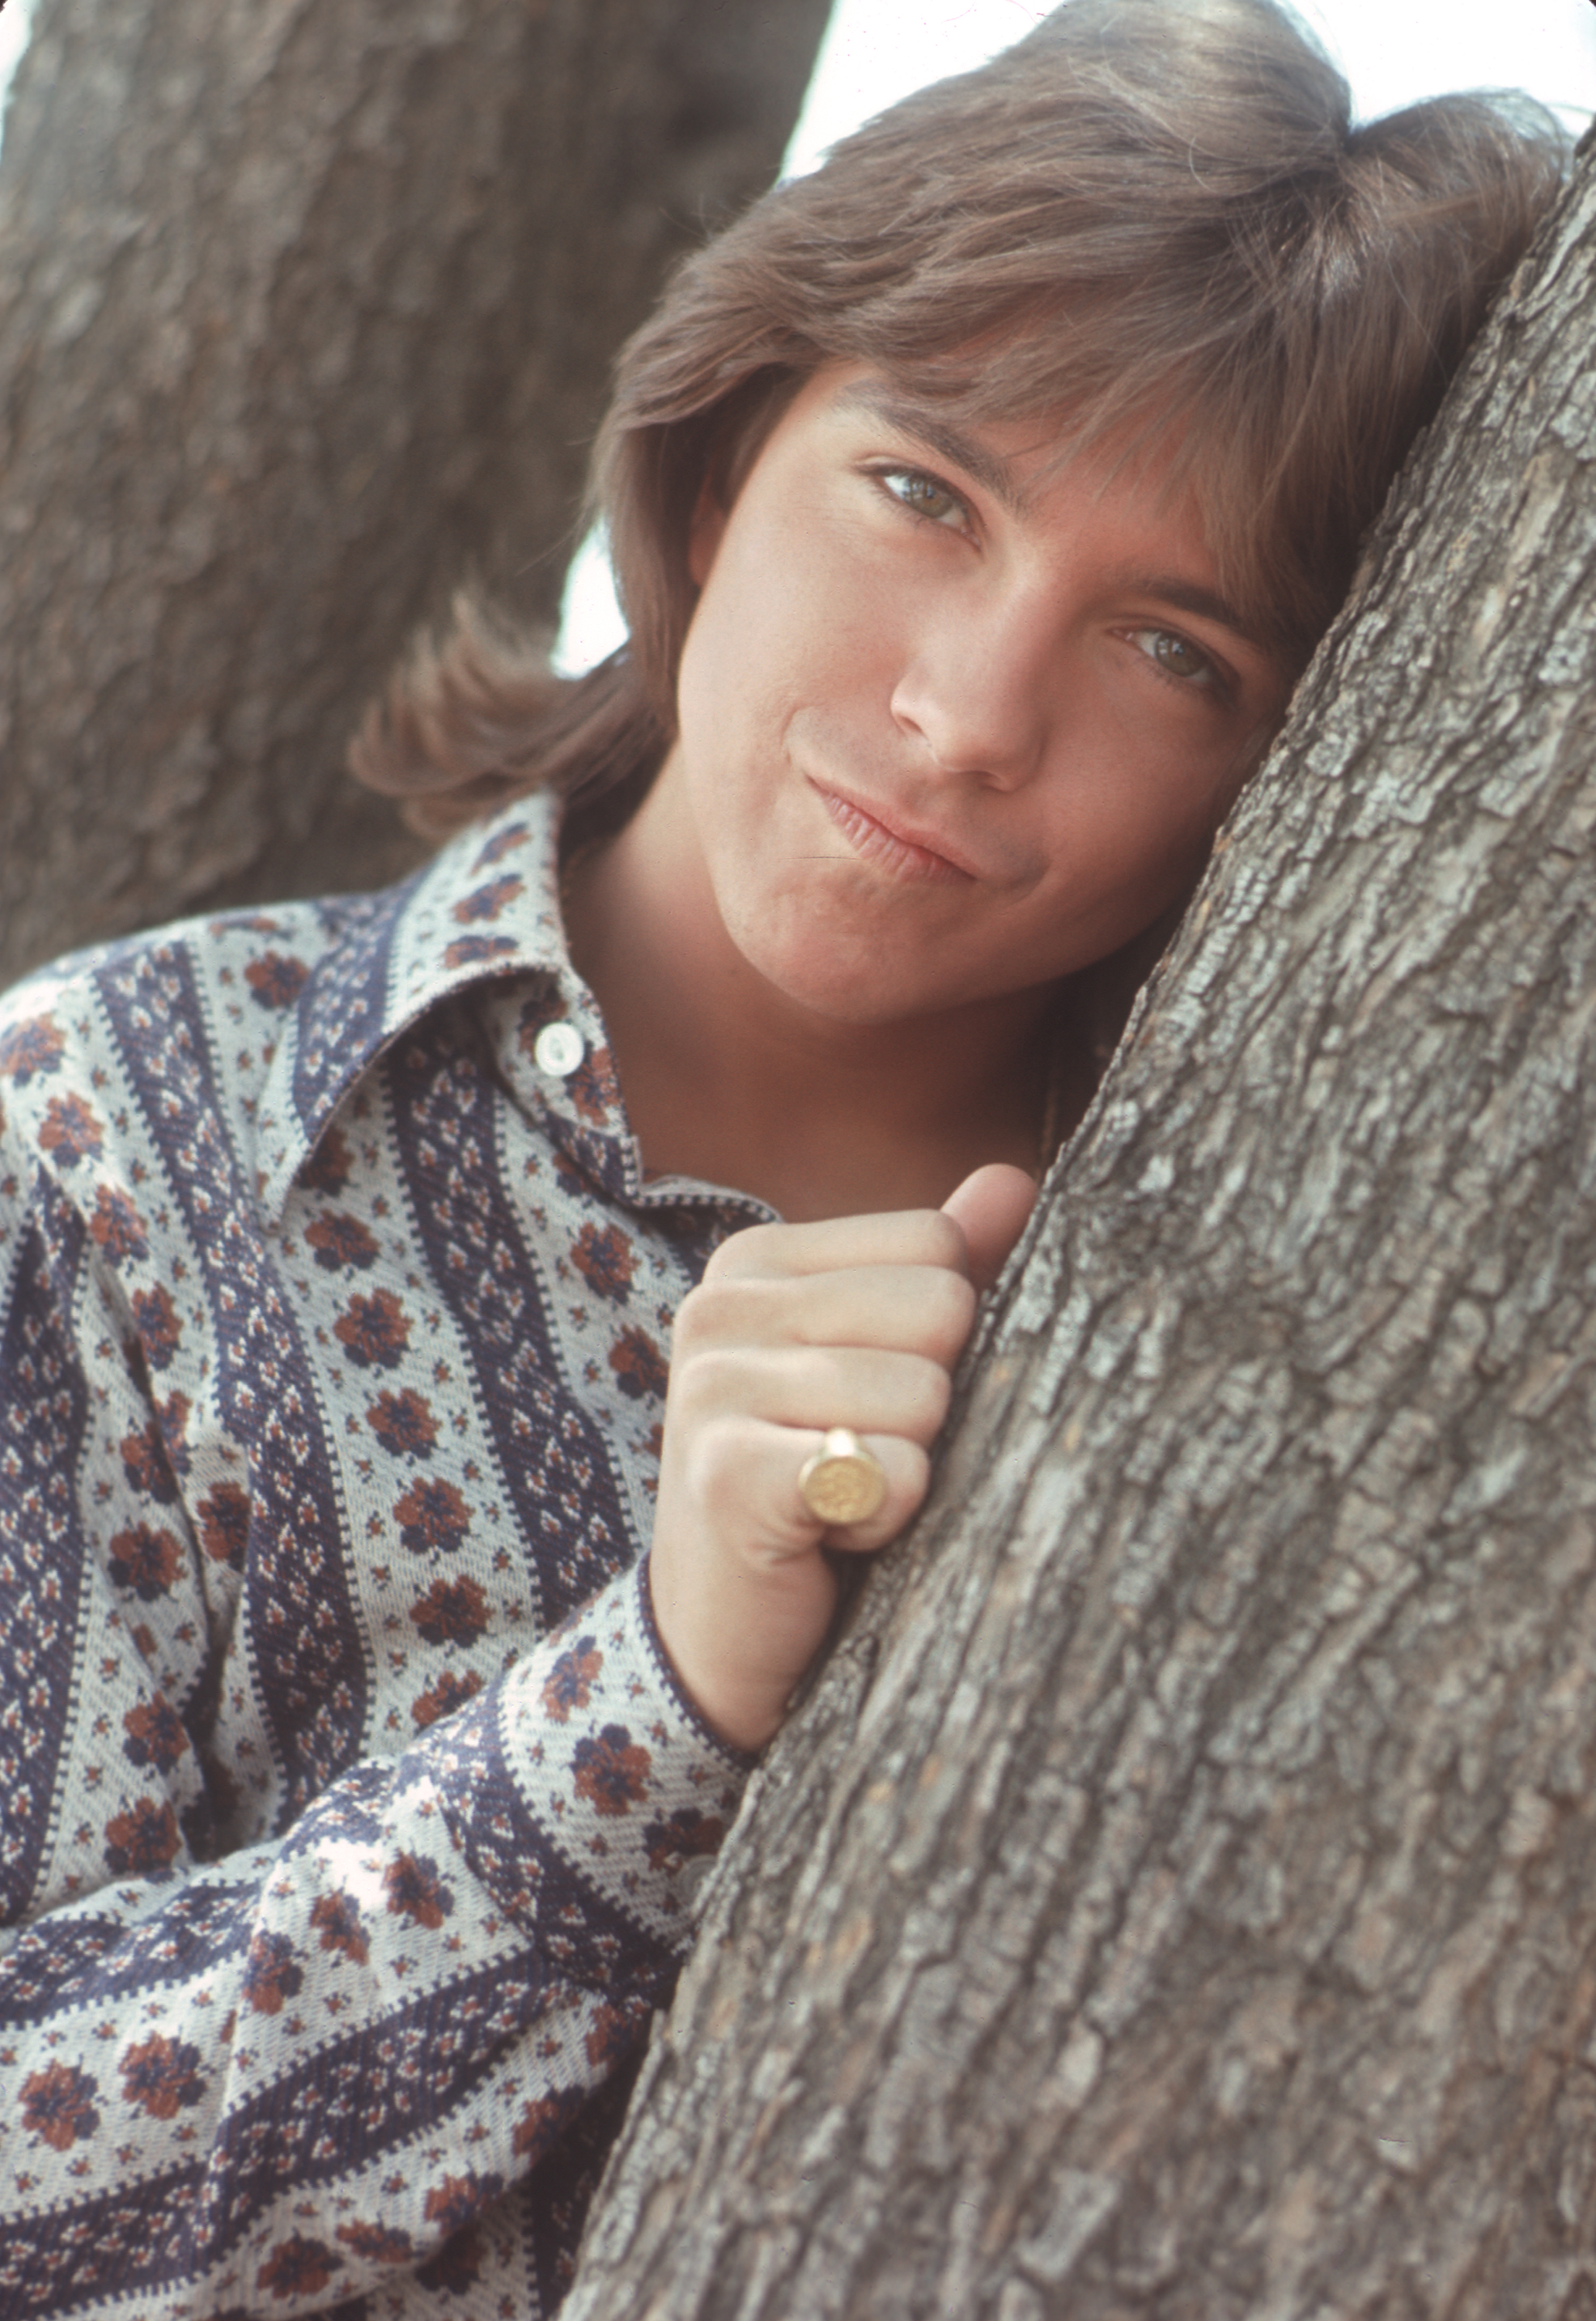 Former-Partridge-Family-Star-David-Cassidy-Reveals-Battle-With-Dementia